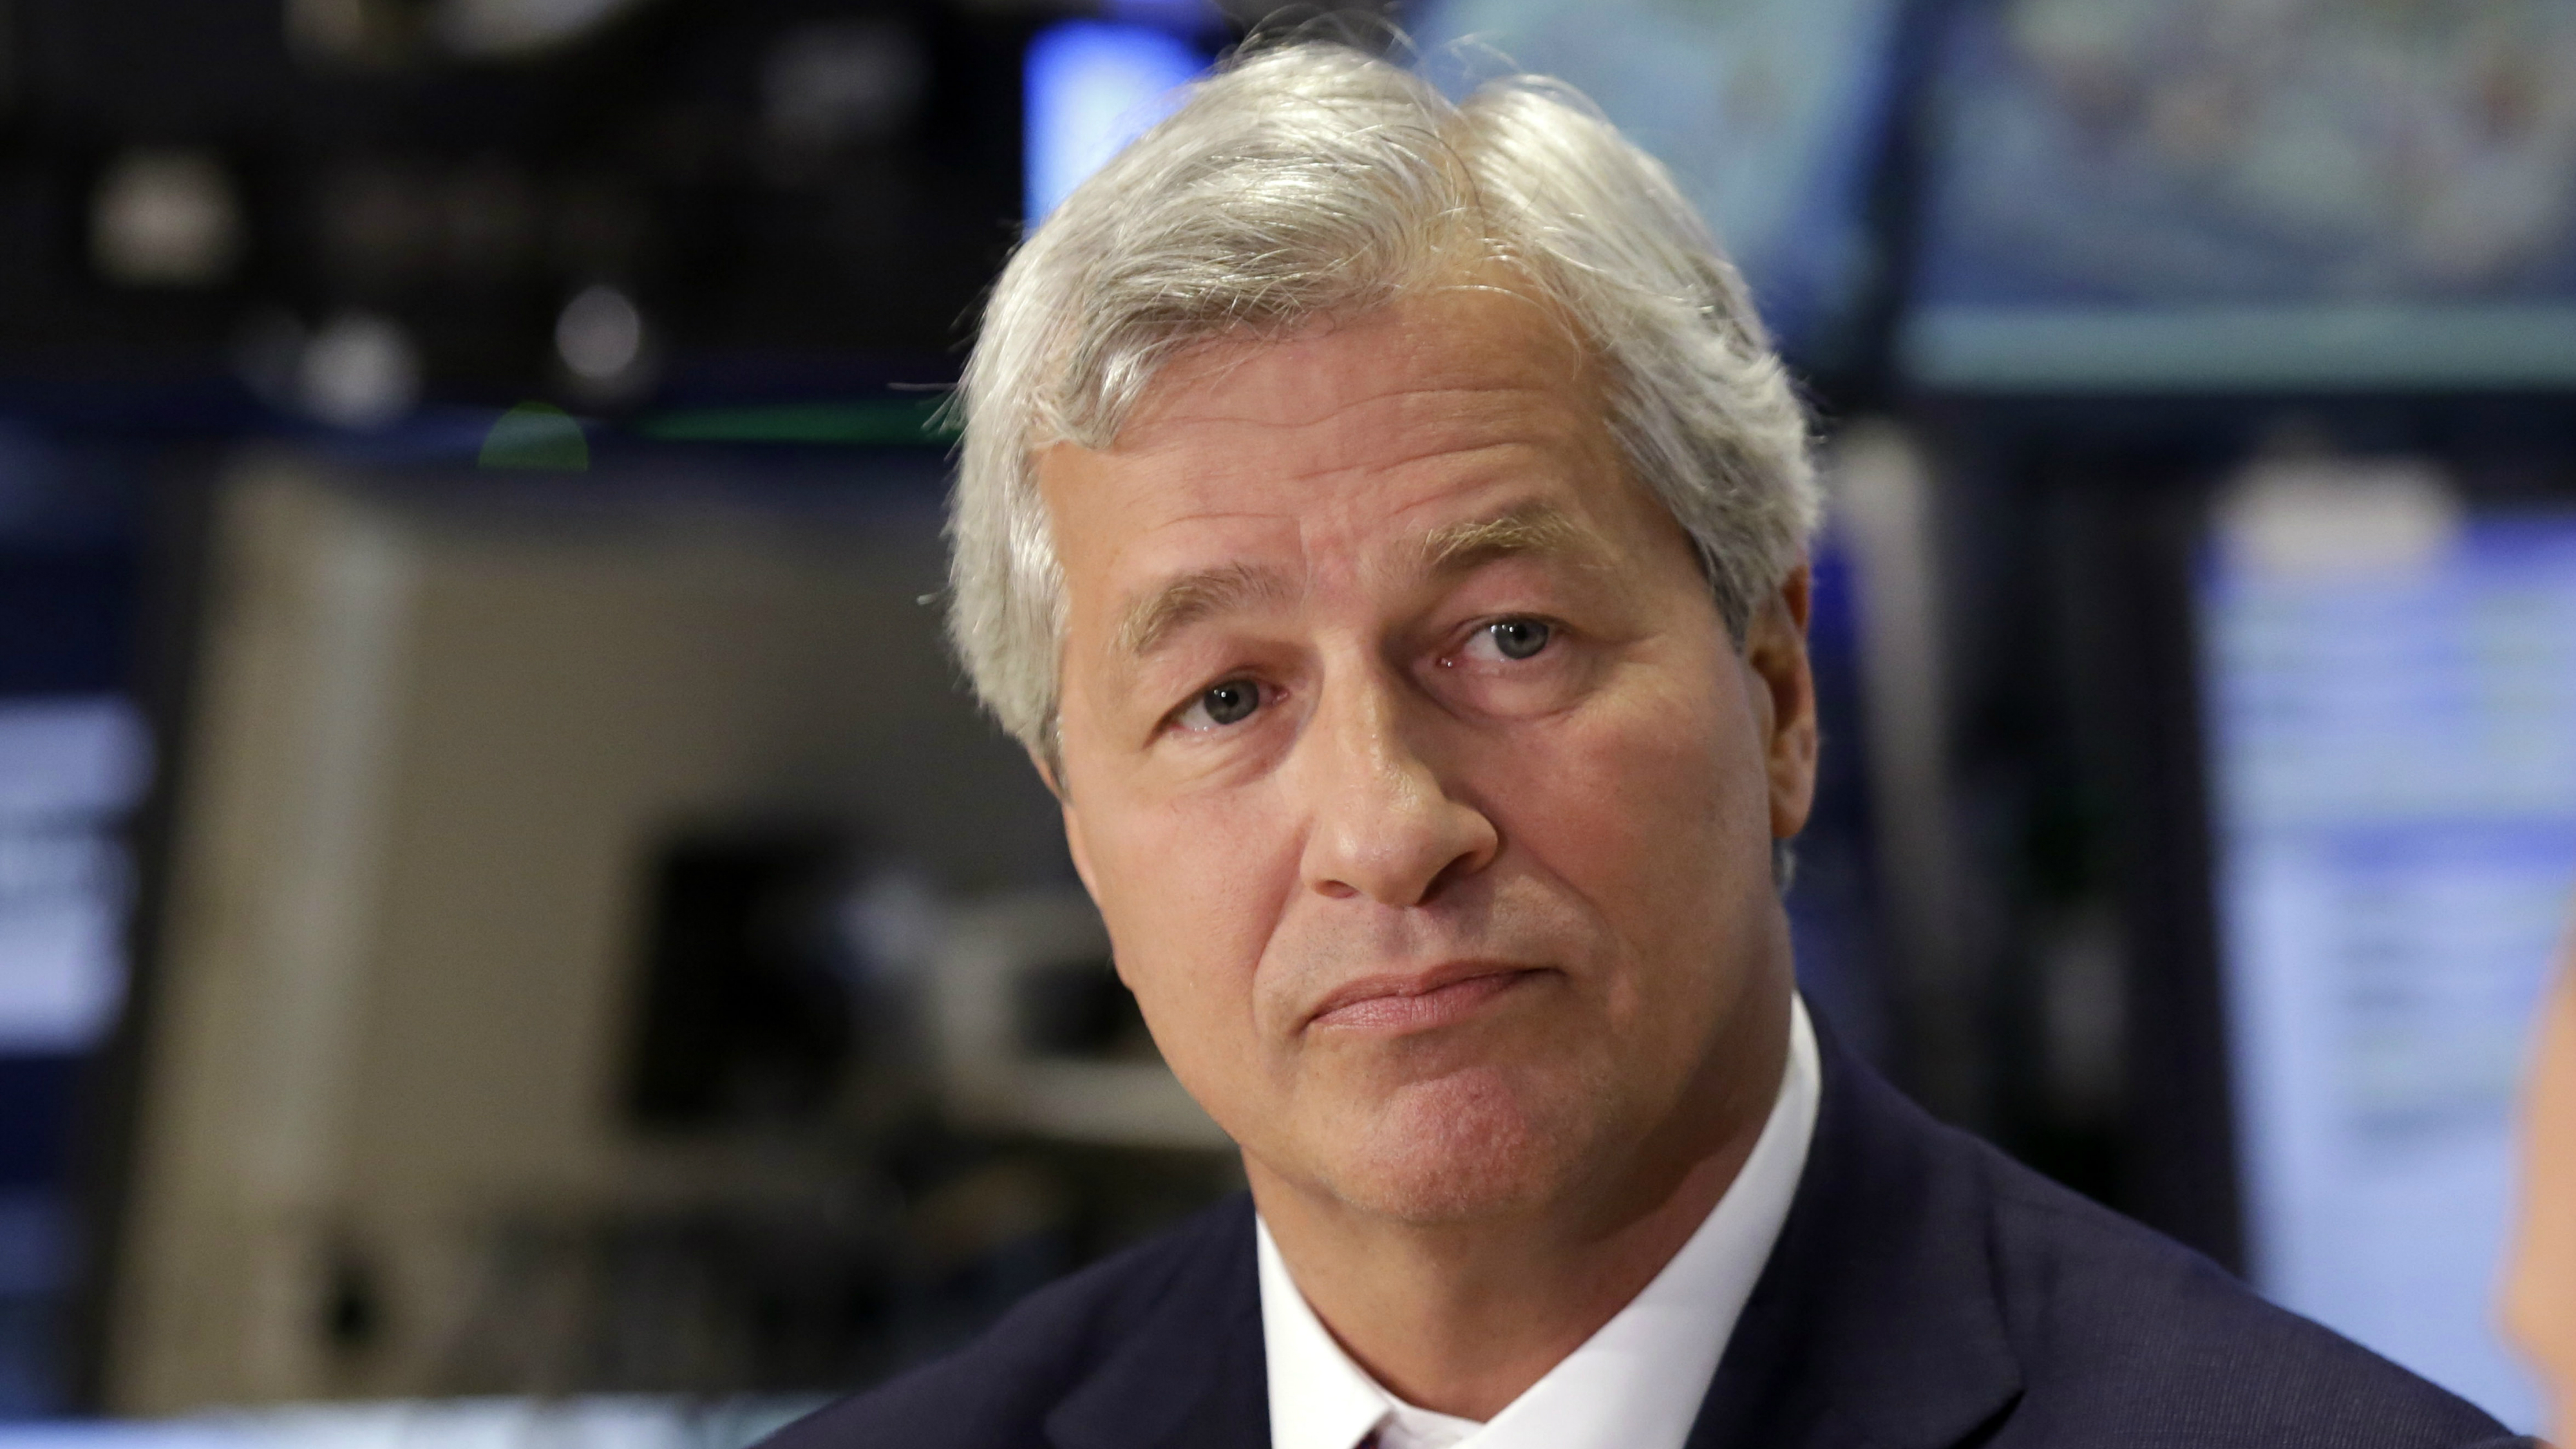 JPMorgan Chase Chairman and CEO Jamie Dimon is interviewed on the floor of the New York Stock Exchange Friday, July 12, 2013. (AP Photo/Richard Drew)